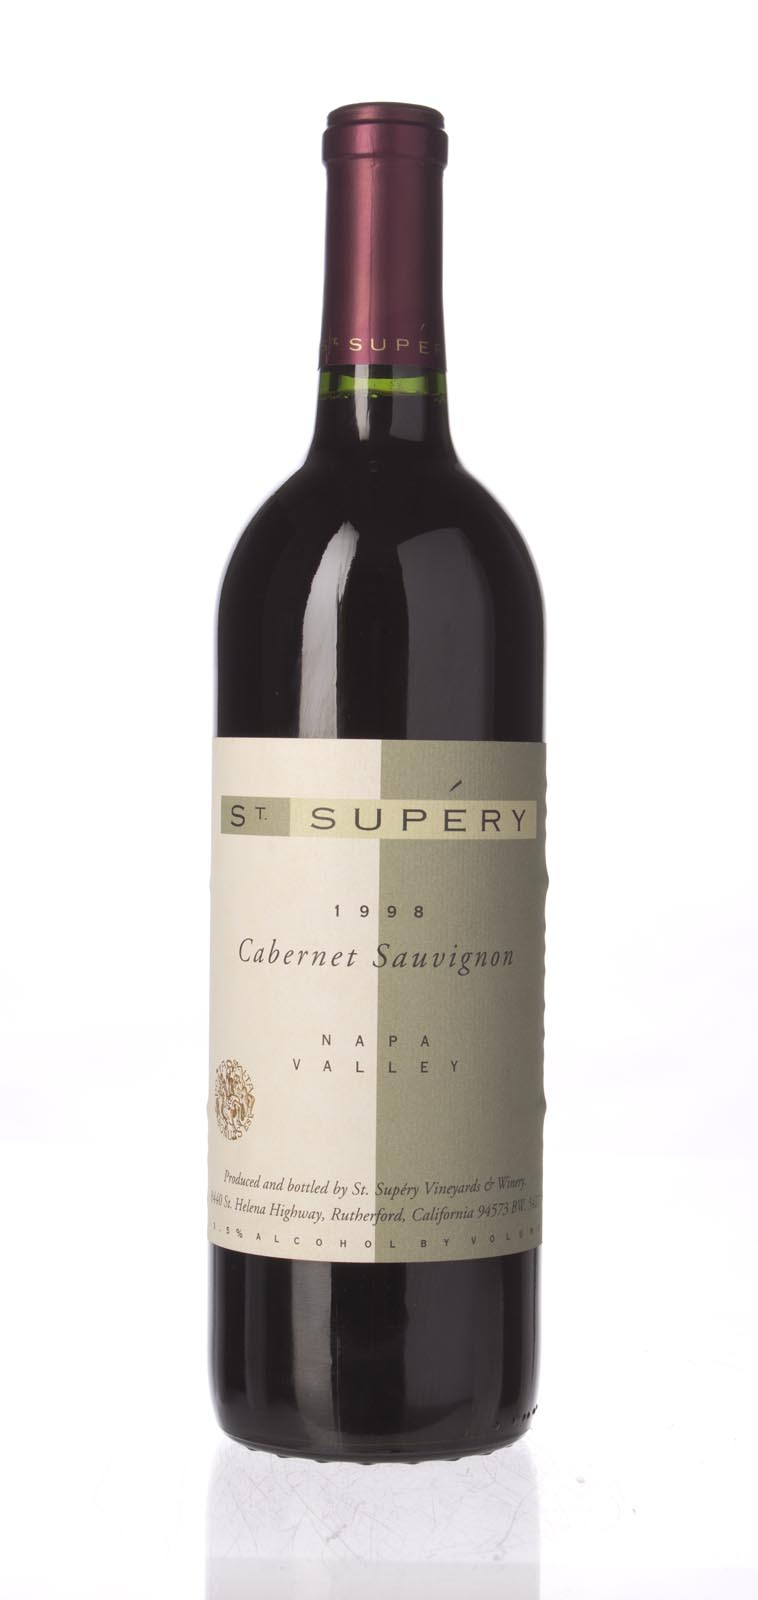 St. Supery Cabernet Sauvignon Napa Valley 1998, 750mL () from The BPW - Merchants of rare and fine wines.